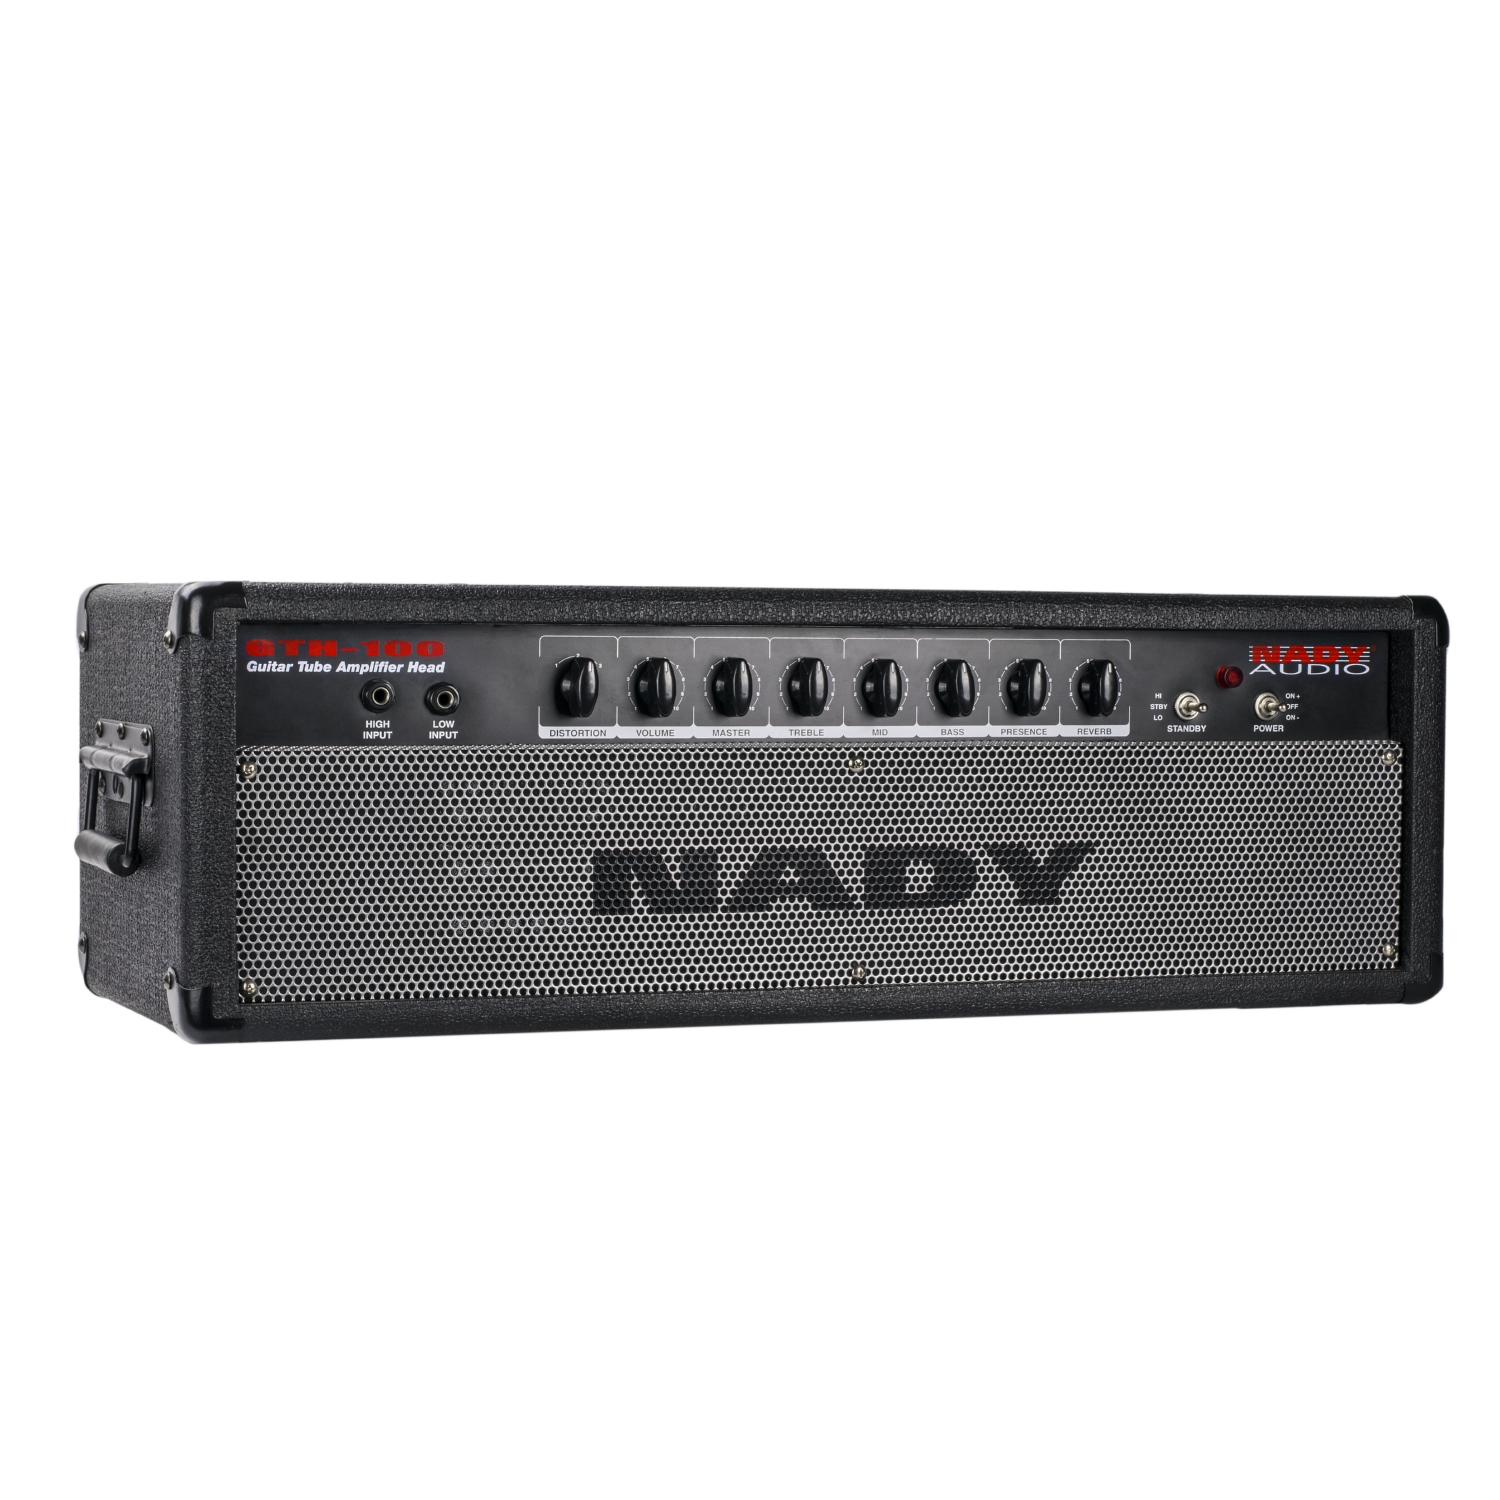 Guitar Amp Head To Audio Interface : gth 100 tube guitar amp head with reverb nady systems inc ~ Hamham.info Haus und Dekorationen